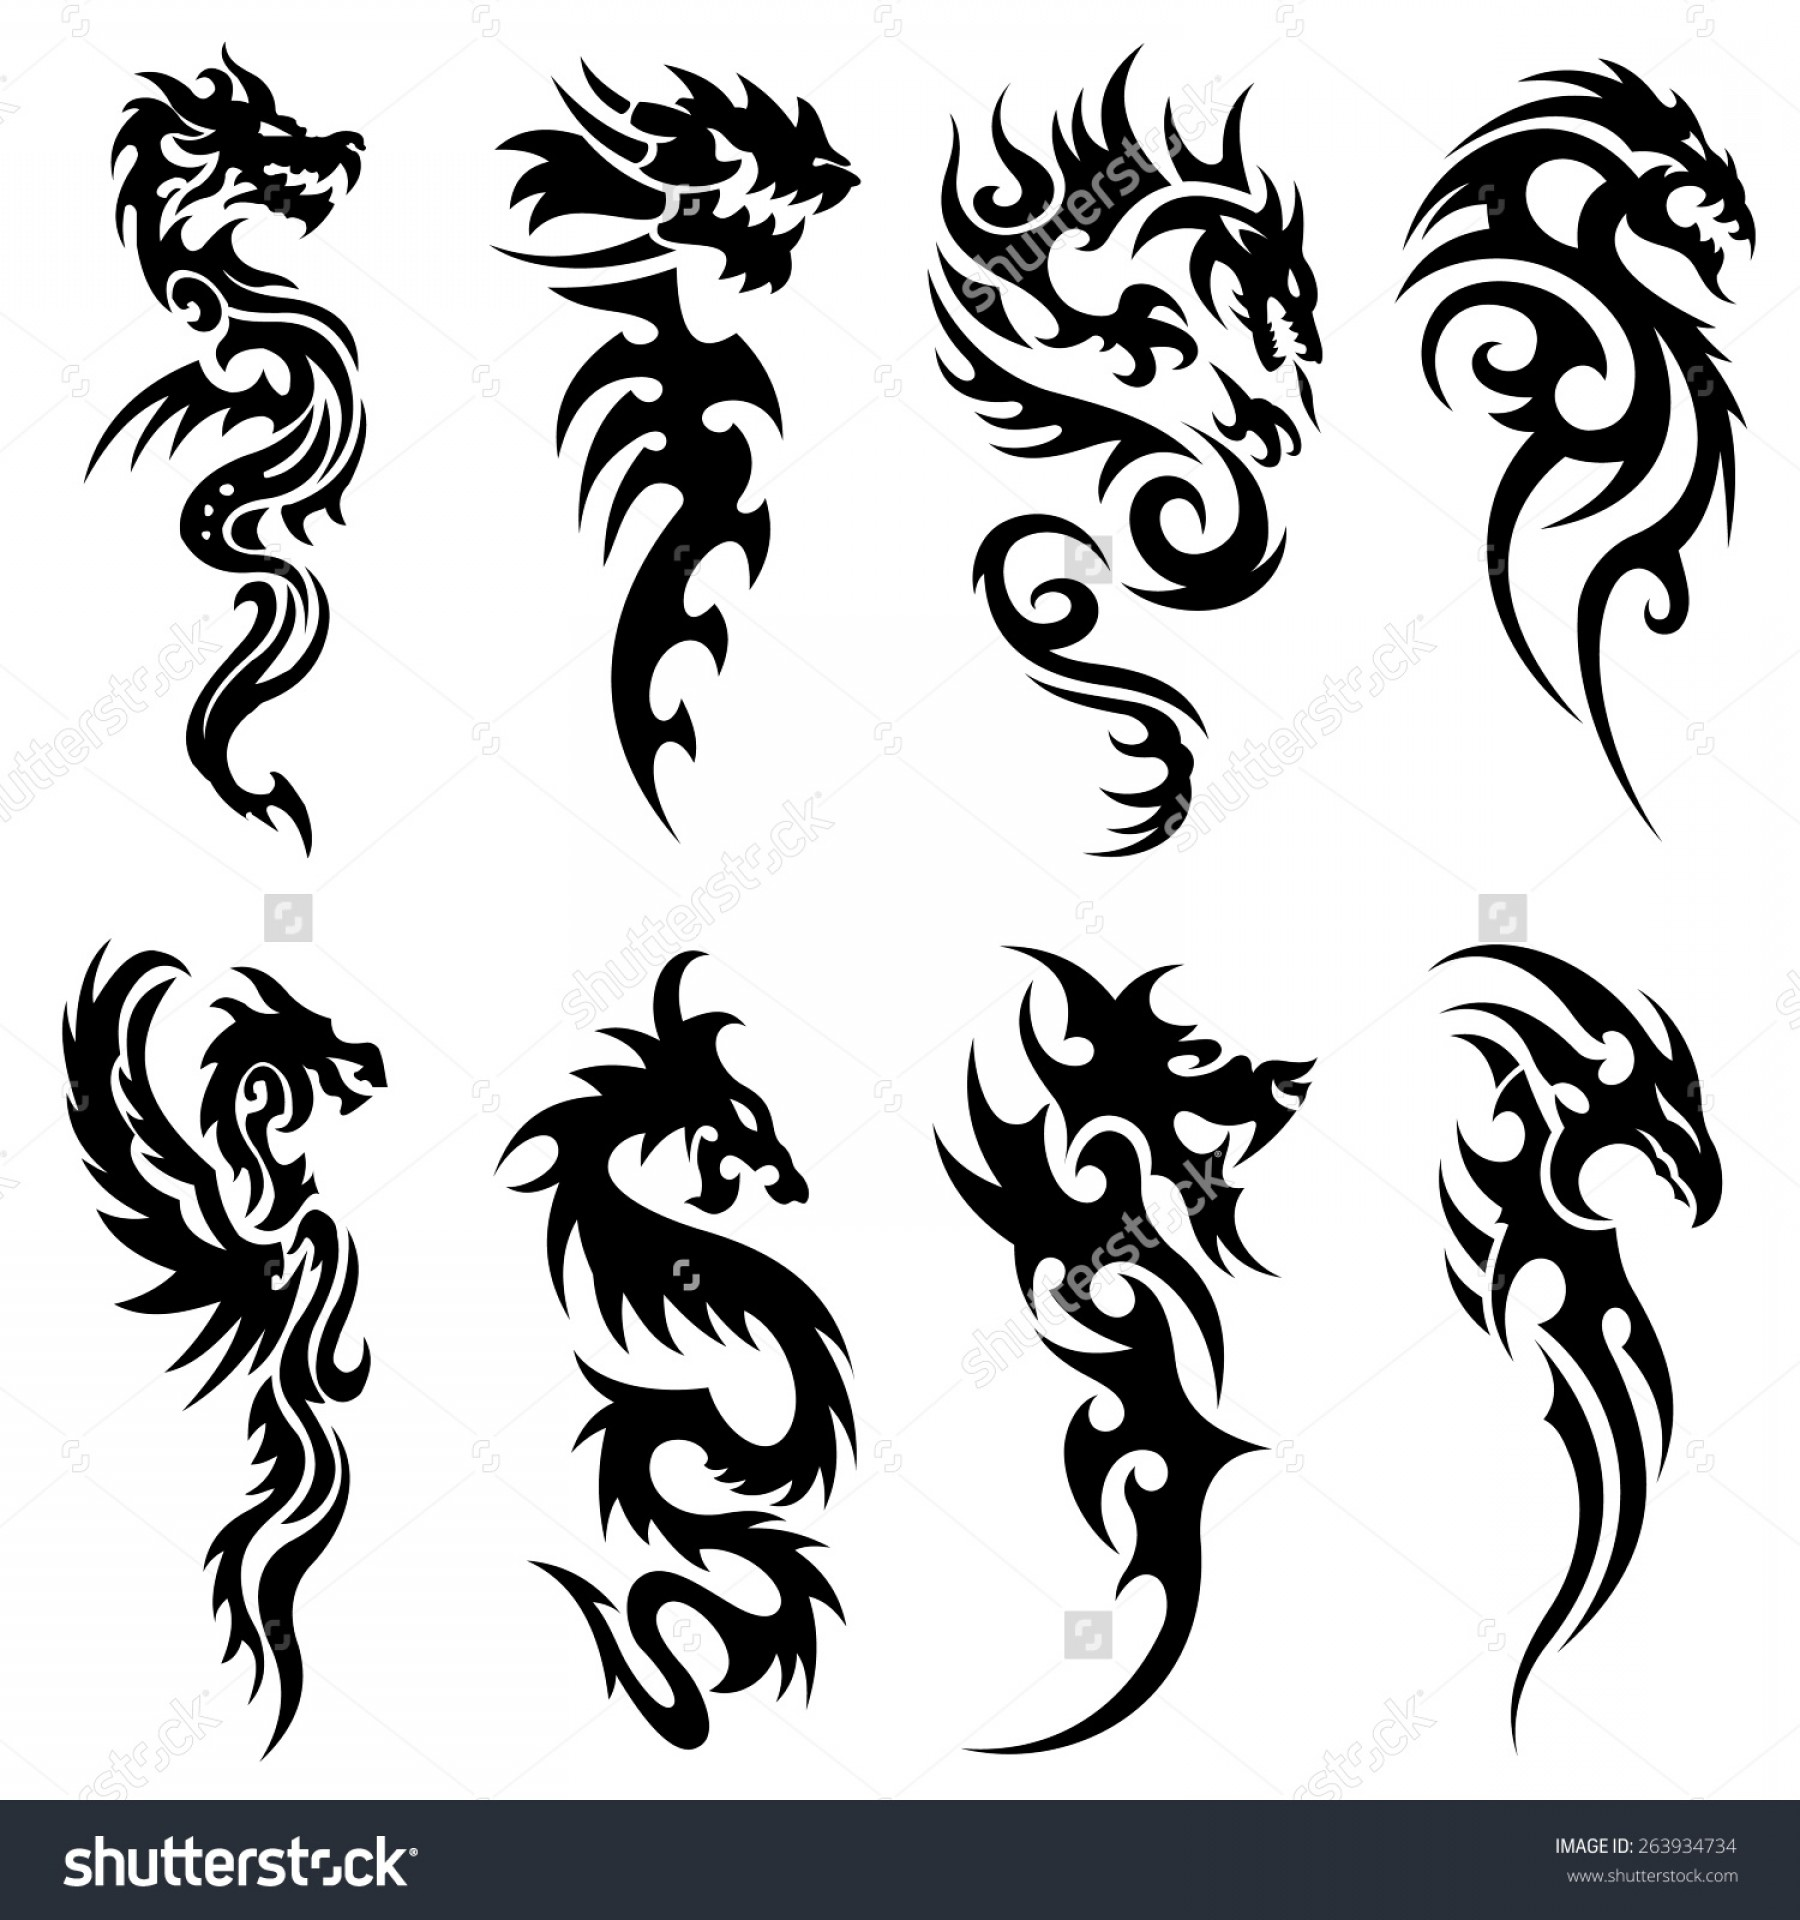 Vector Tribal Tattoo Sleeve: Snake And Dragon Tattoo Tribal Tattoo Snake Dragon Set Design Stock Vector